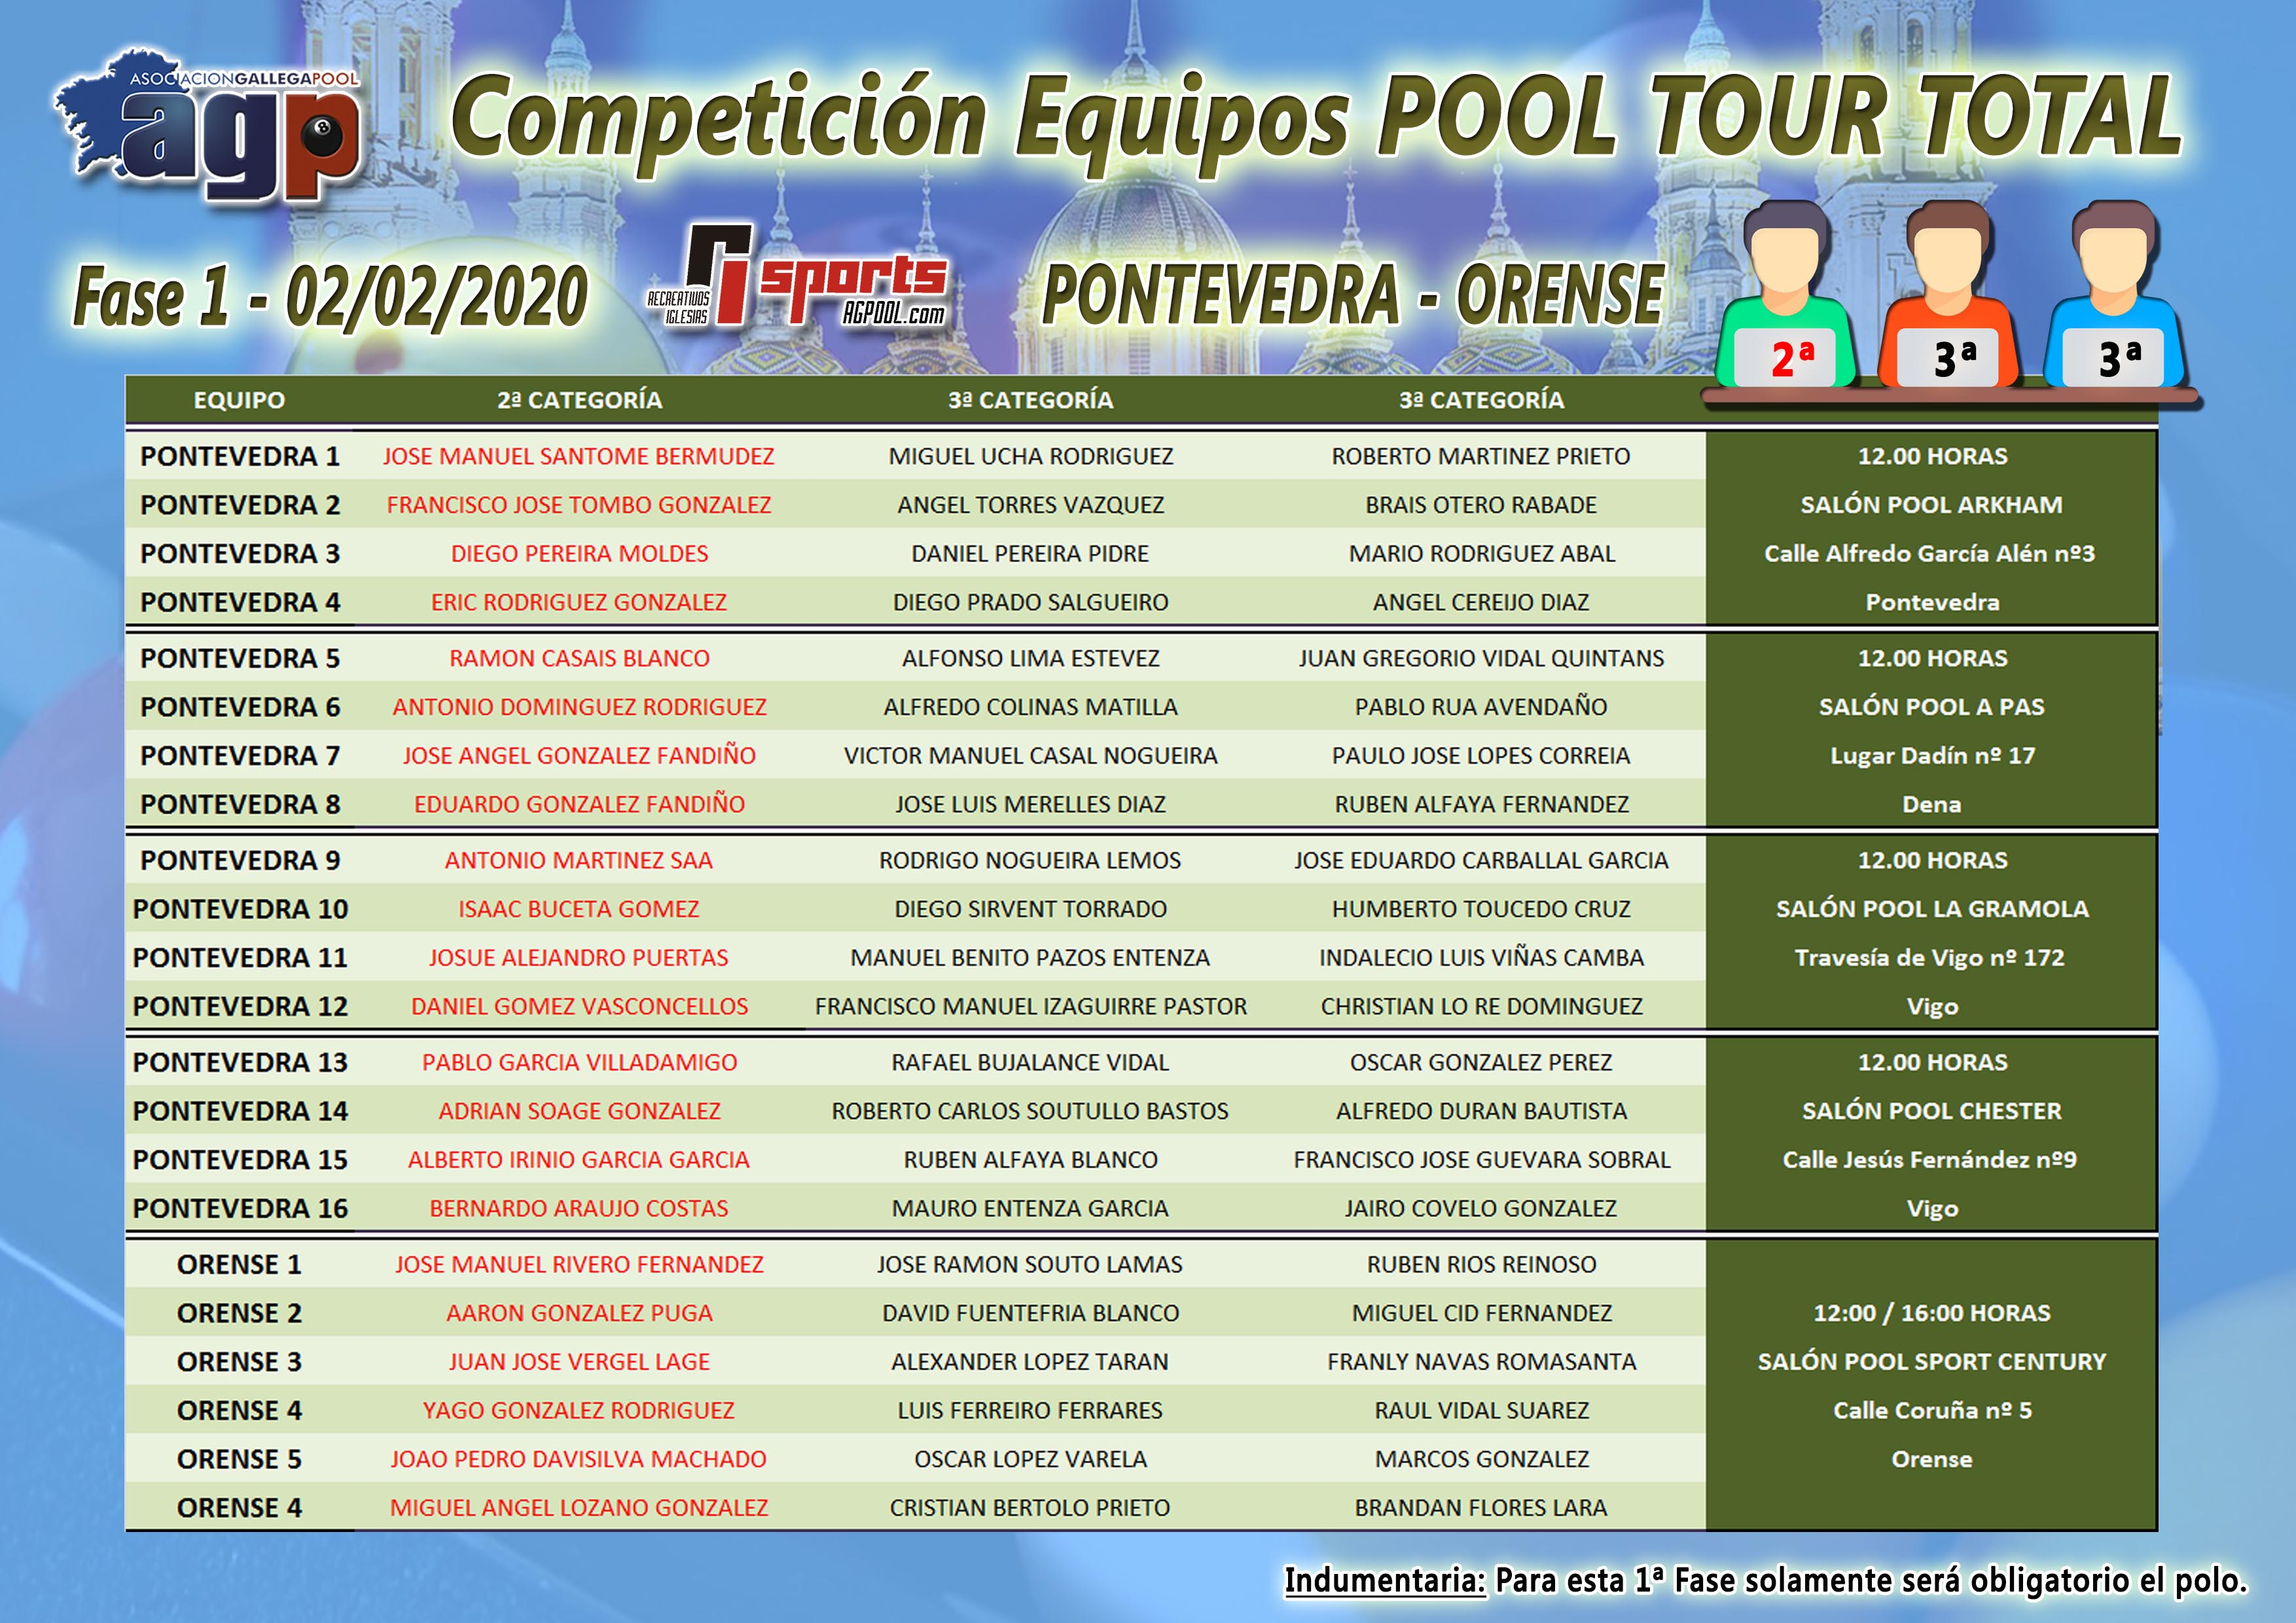 Competición de Equipos Pool Tour Total - Fase 1